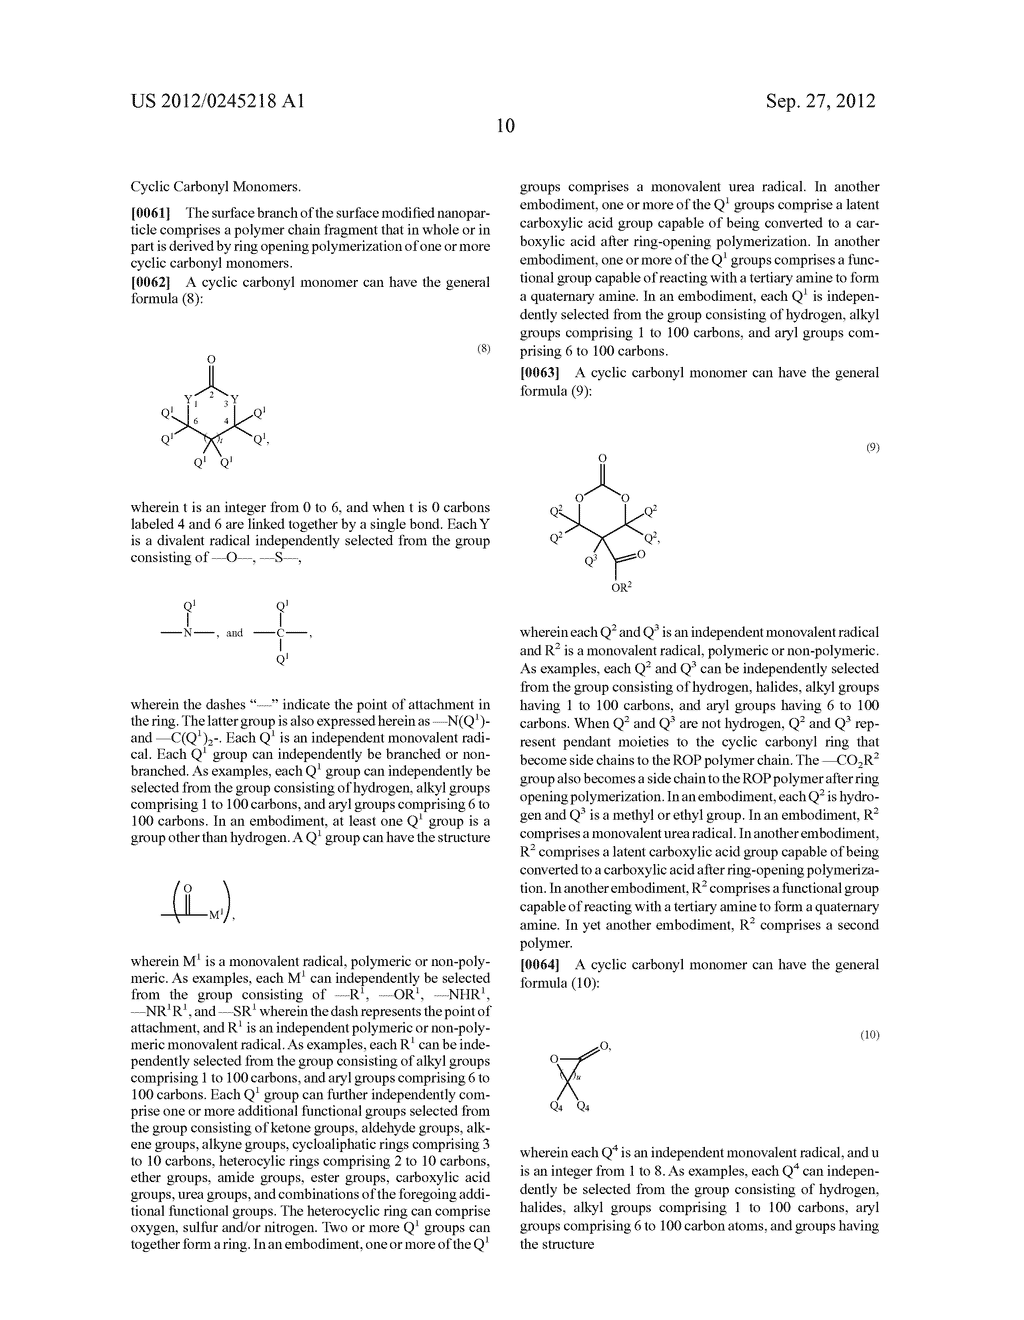 SURFACE MODIFIED NANOPARTICLES, METHODS OF THEIR PREPARATION, AND USES     THEREOF FOR GENE AND DRUG DELIVERY - diagram, schematic, and image 11